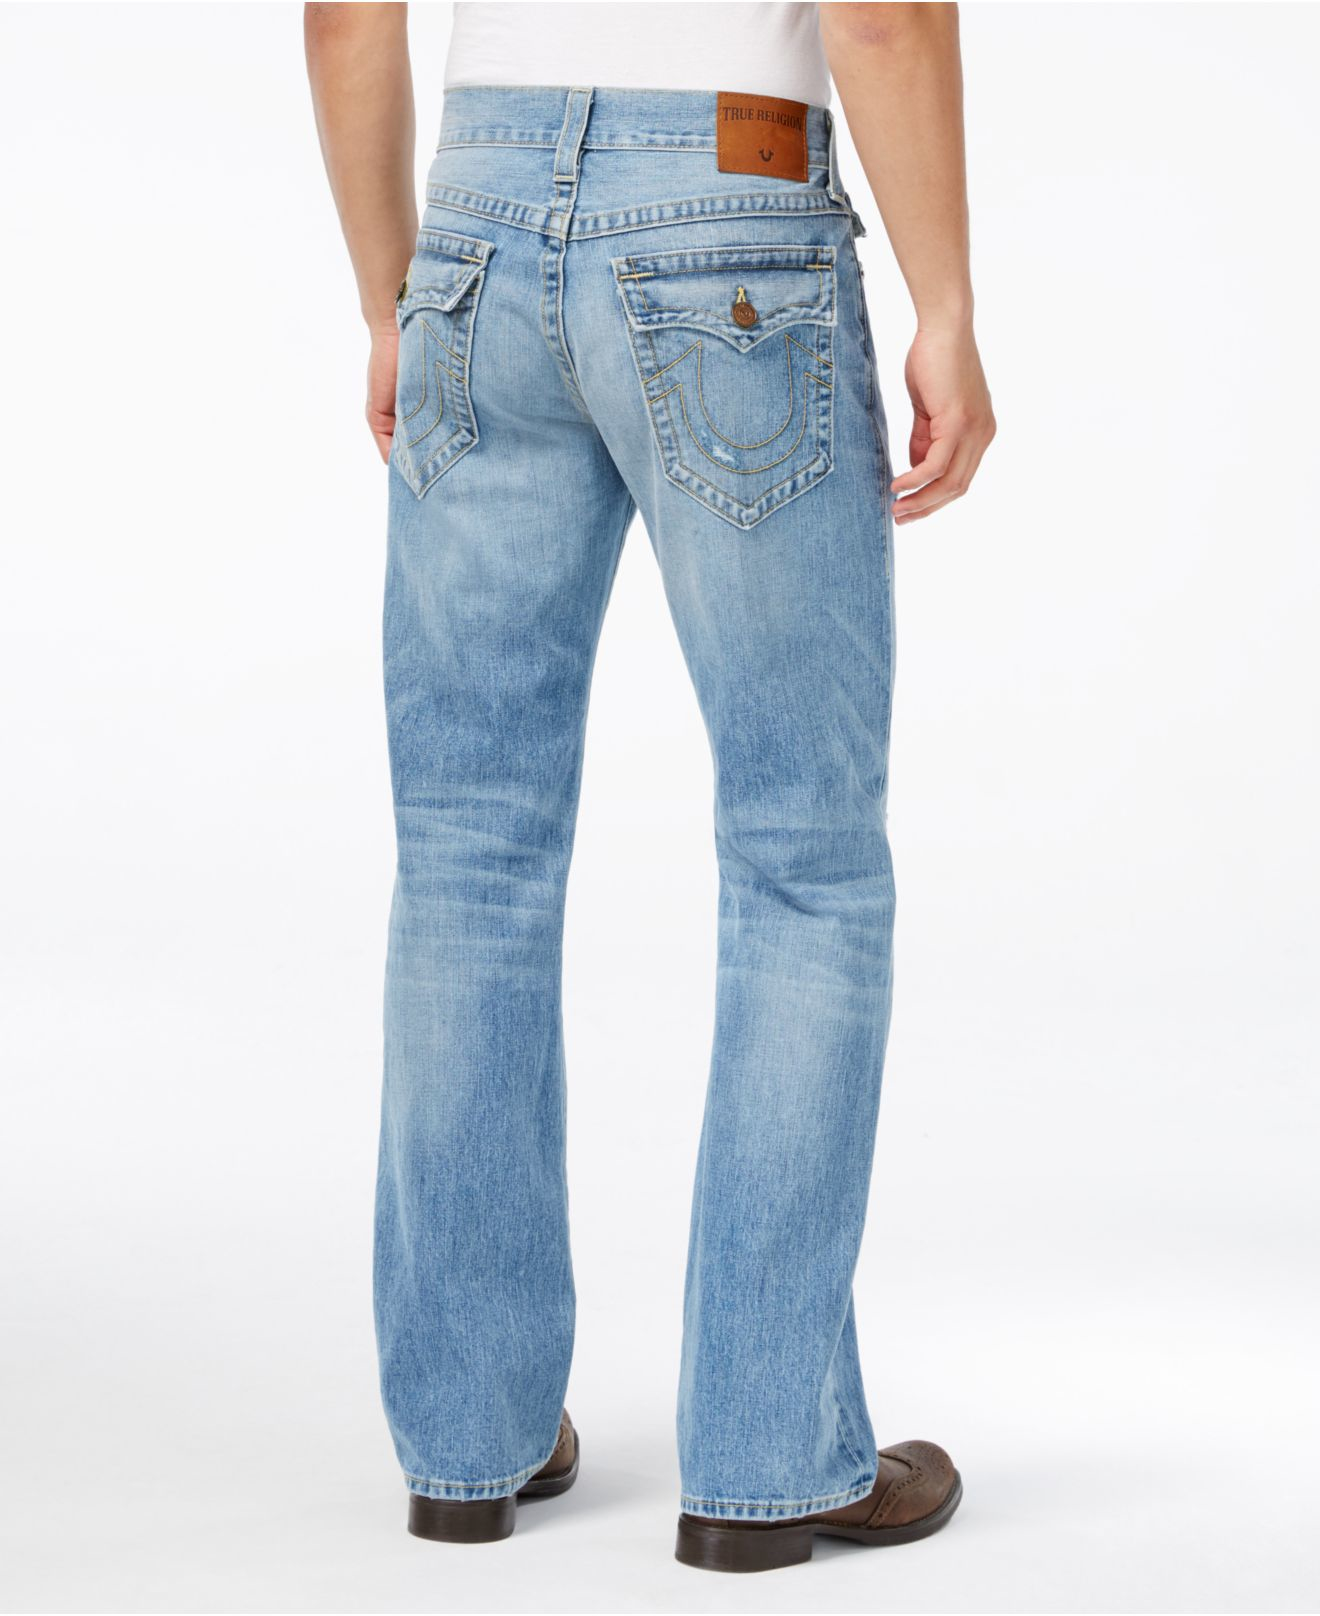 Free shipping BOTH ways on true religion mens jeans, from our vast selection of styles. Fast delivery, and 24/7/ real-person service with a smile. Click or call